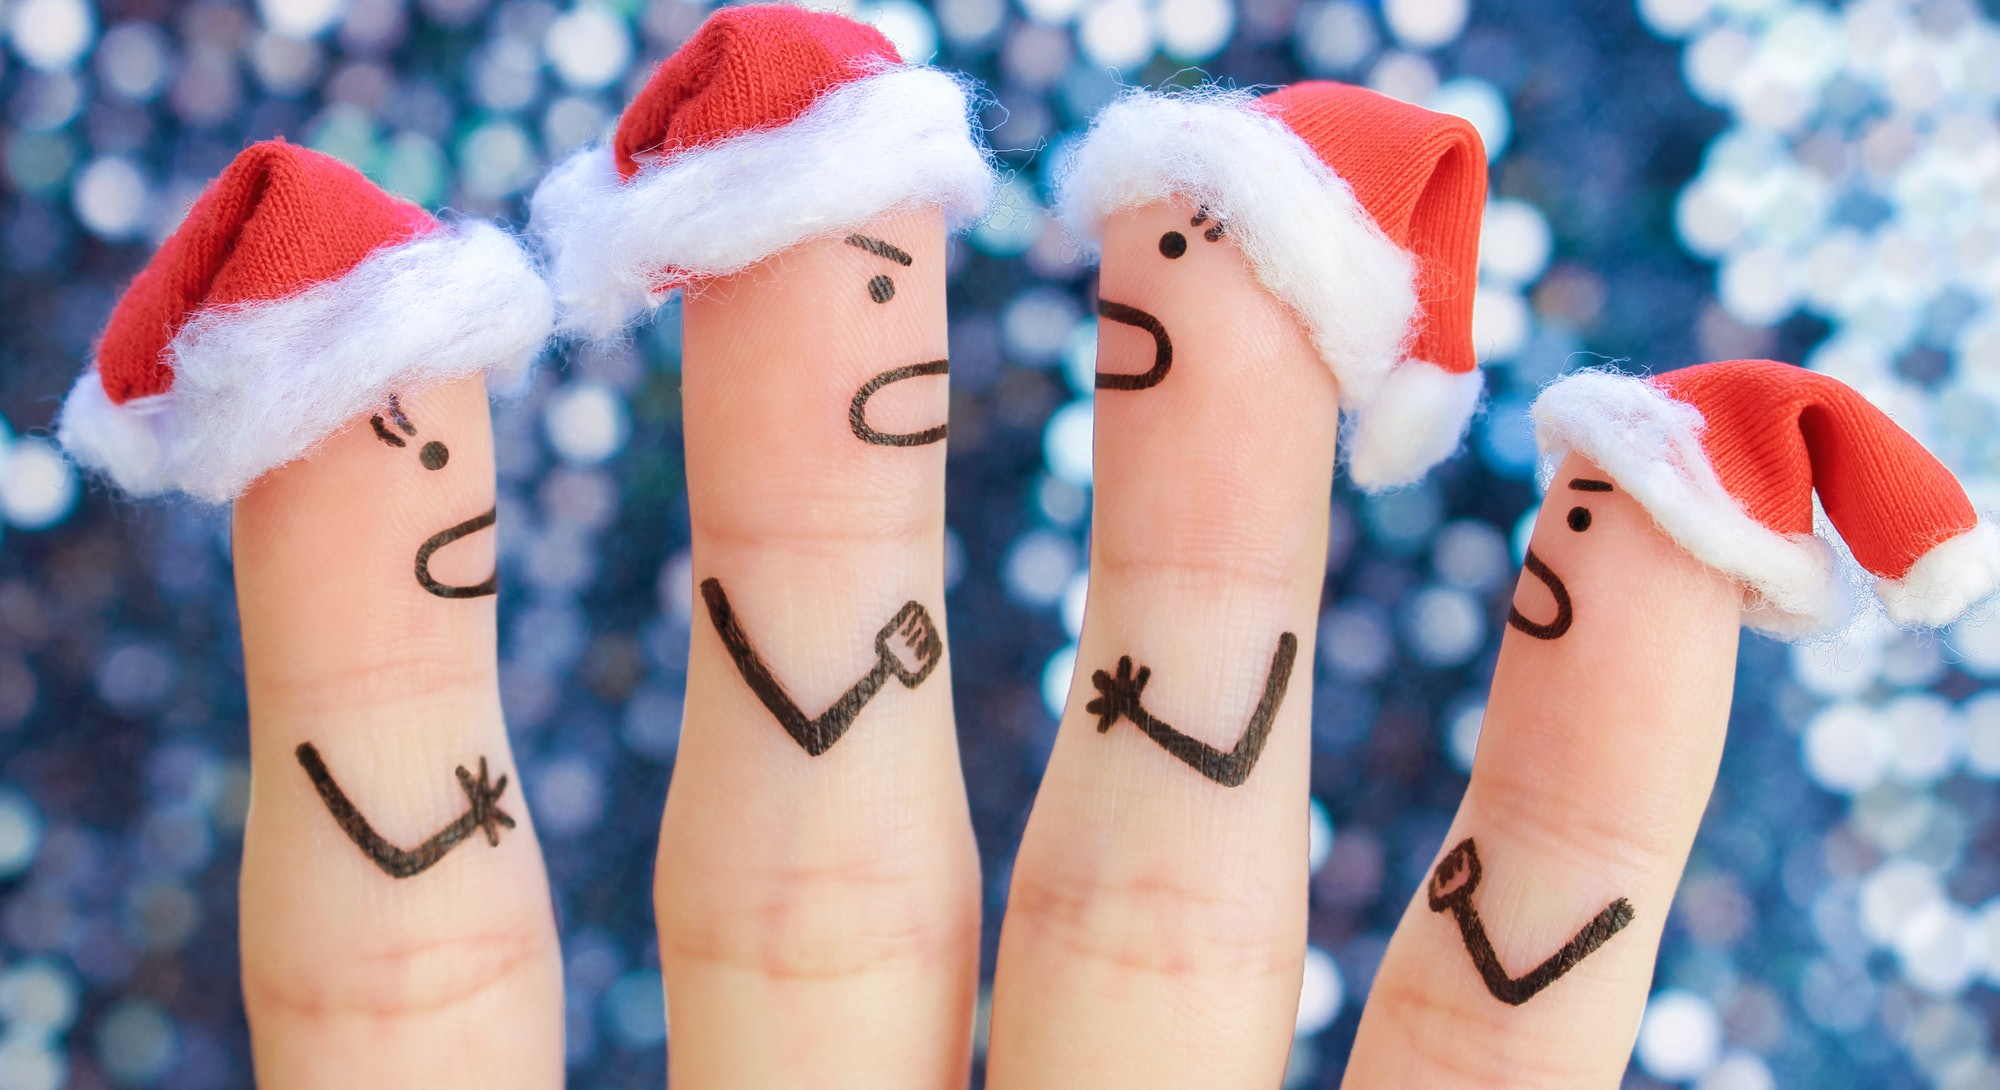 Fingers art of of people during quarrel in New Year.